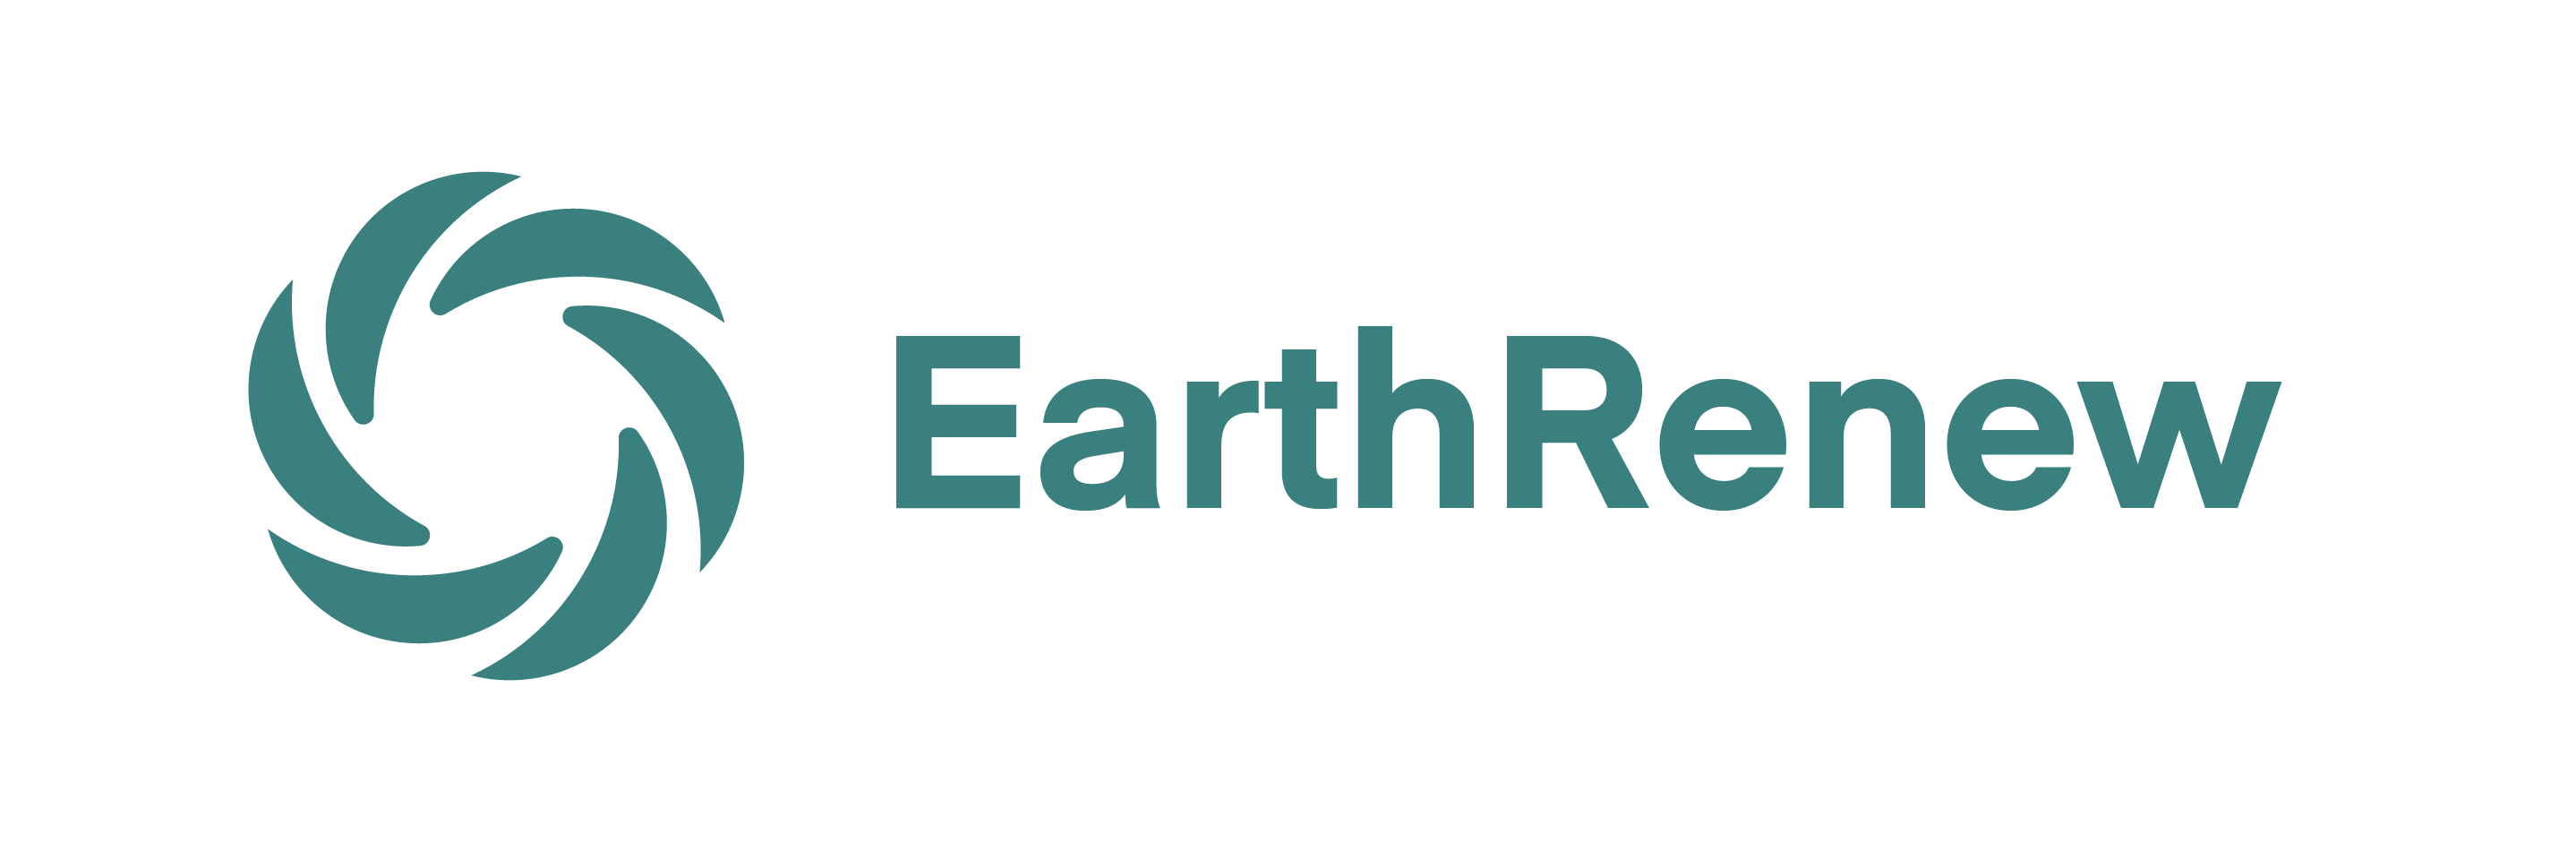 REPEAT - EarthRenew Announces Feasibility Study With One of the Largest Feedlots in the Southwestern United States